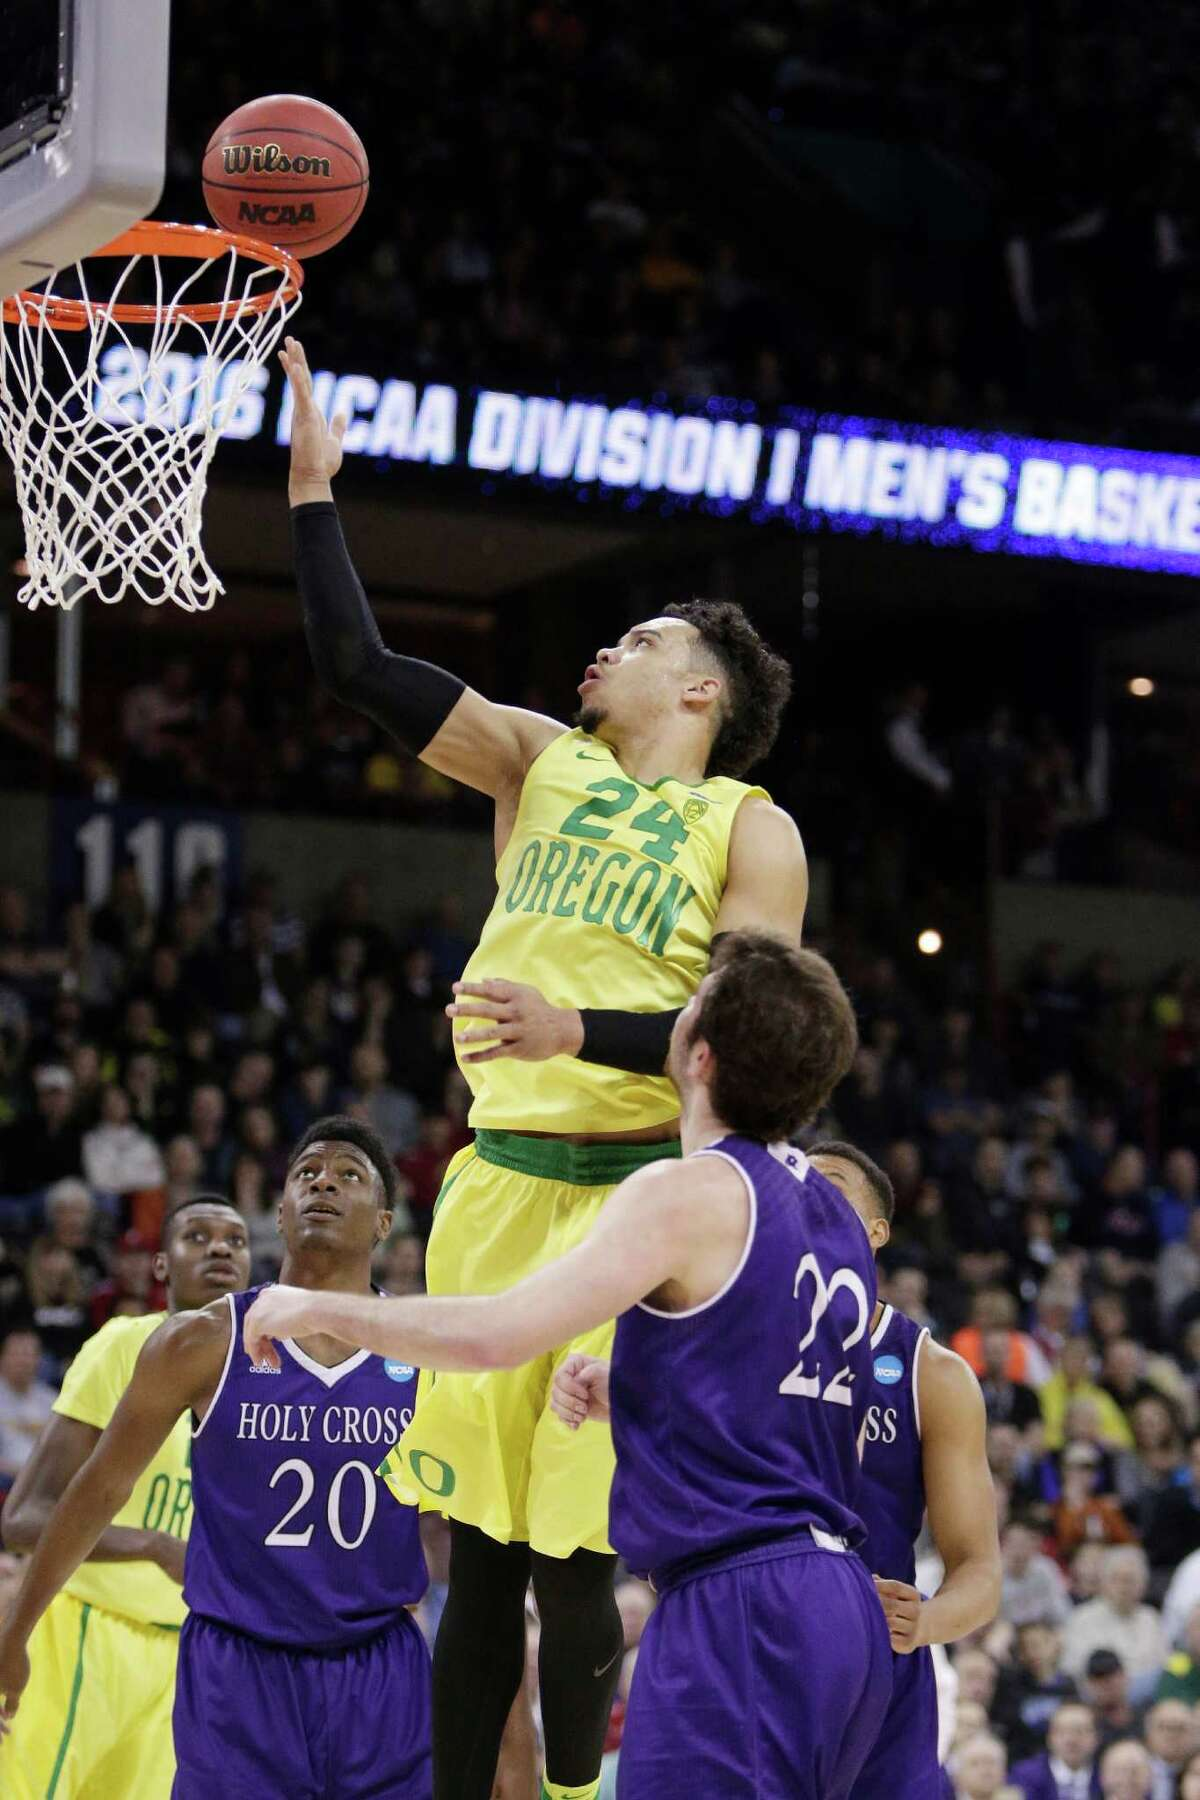 48. 1 Oregon defeats 16 Holy Cross, 91-52 No drama, no suspense, just a good old-fashioned rout of a No. 16-seed. Pain index: 1